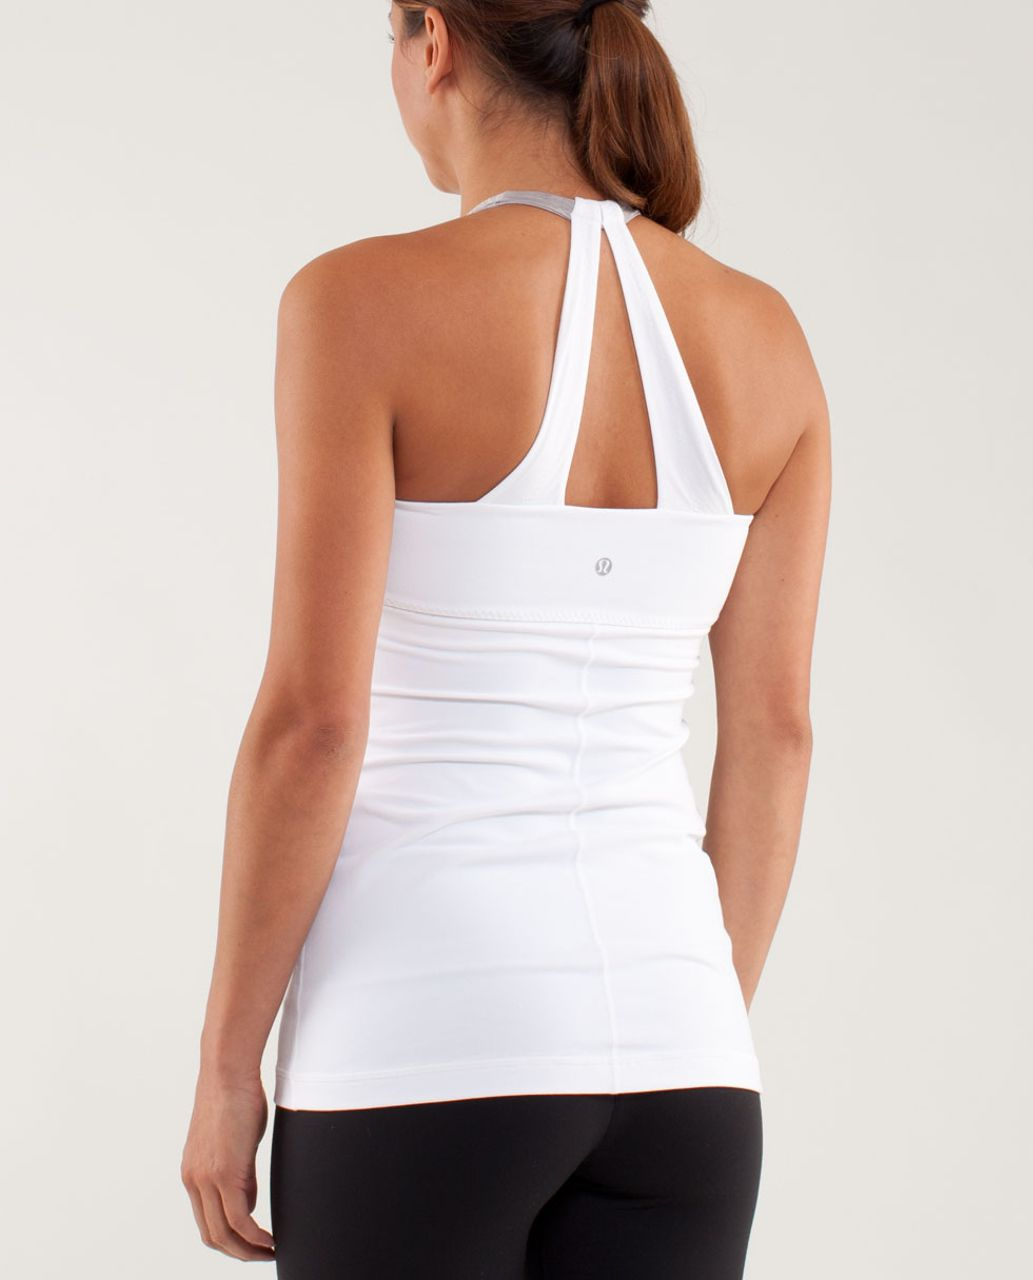 Lululemon Scoop Me Up Tank - White / Metallic Silver